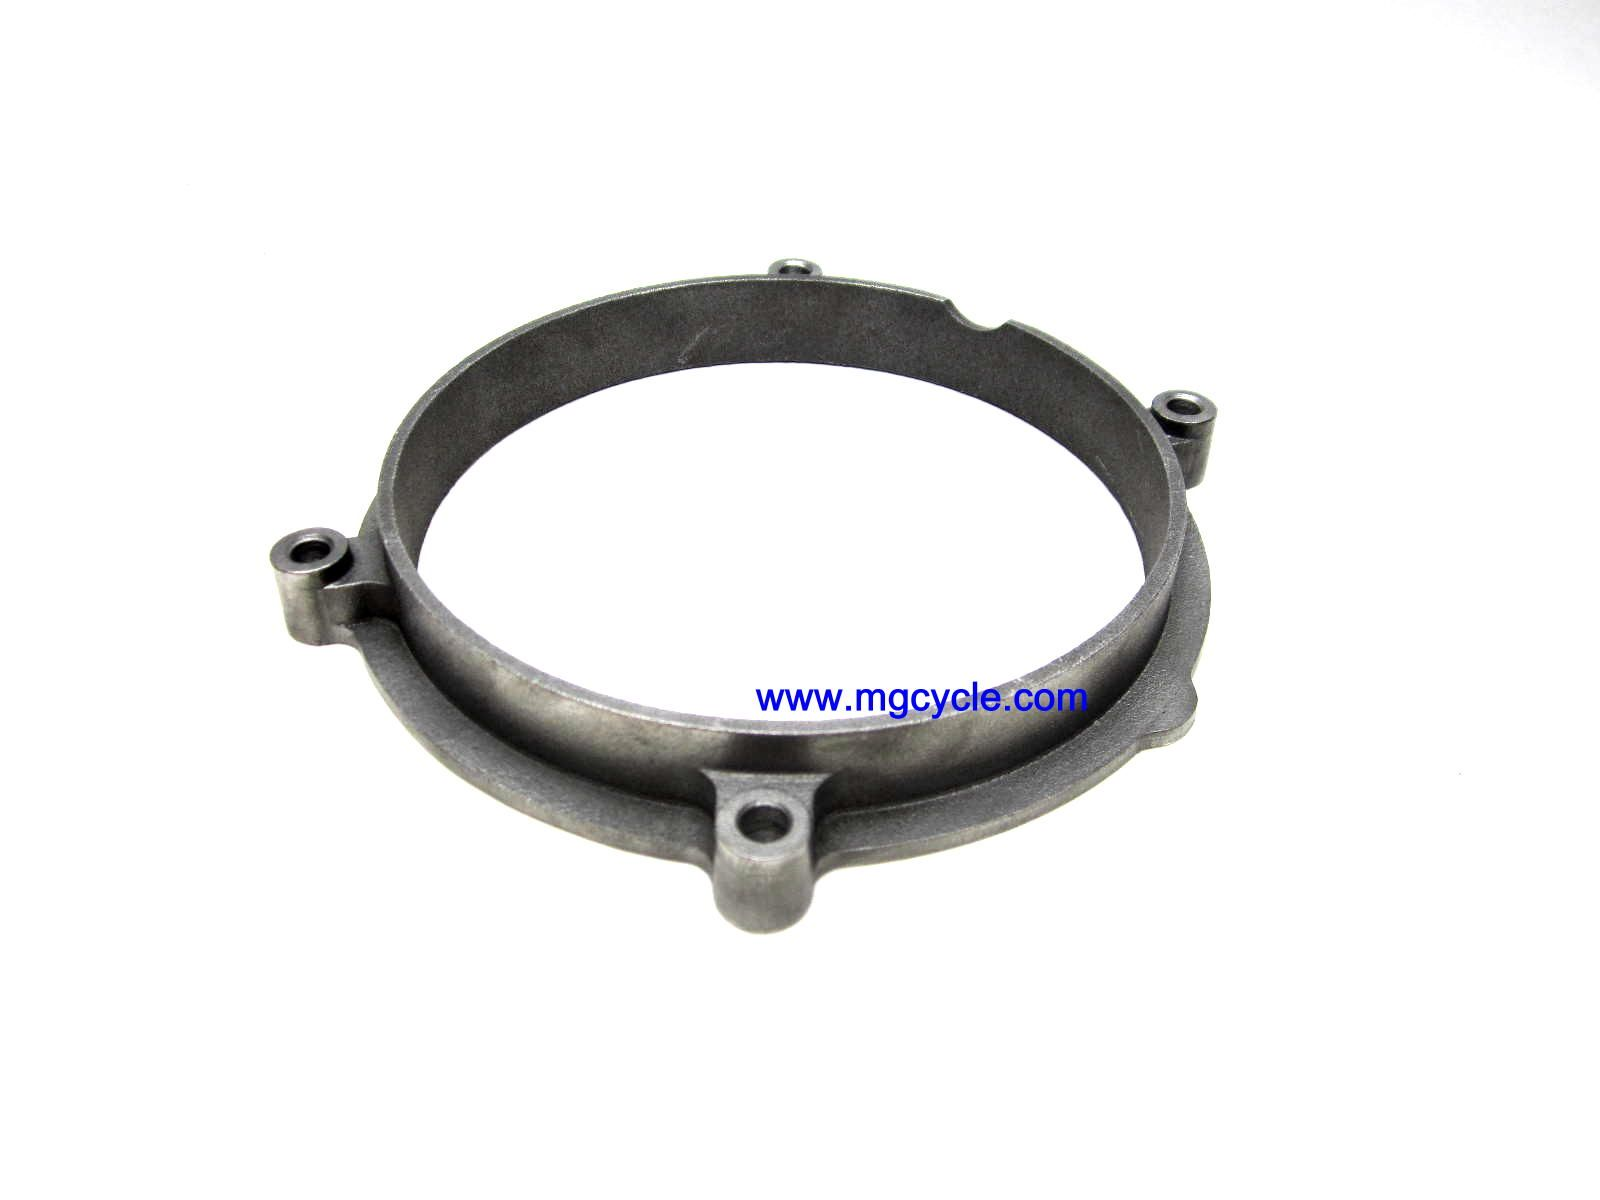 cast aluminum ventilation spacer for alternator cover